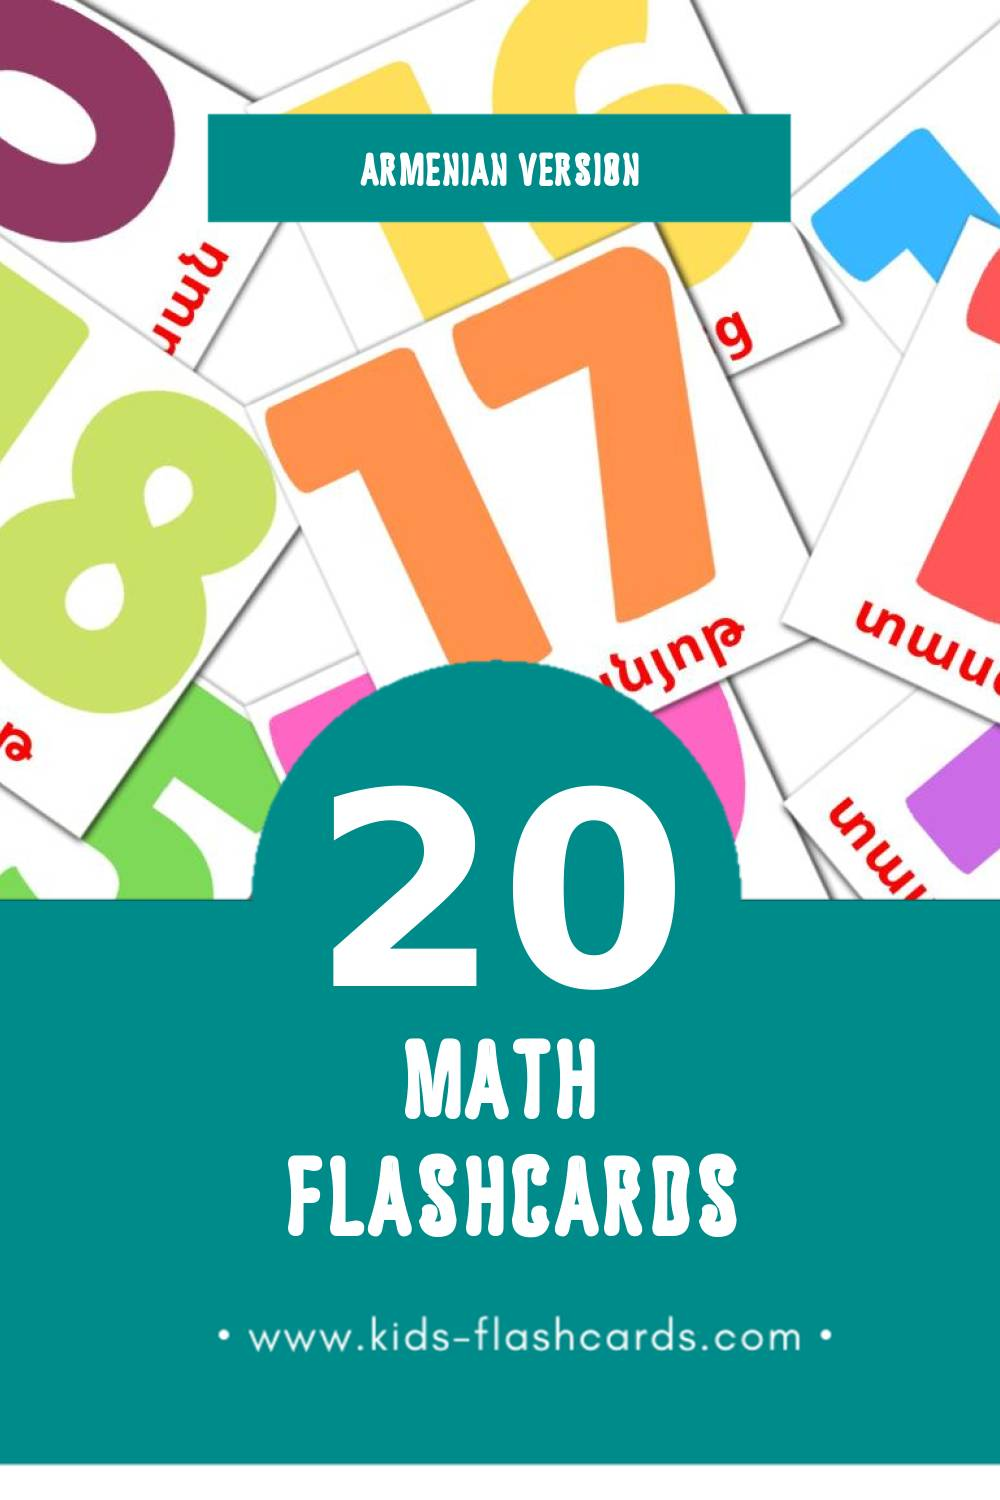 Visual Math Flashcards for Toddlers (20 cards in Armenian)